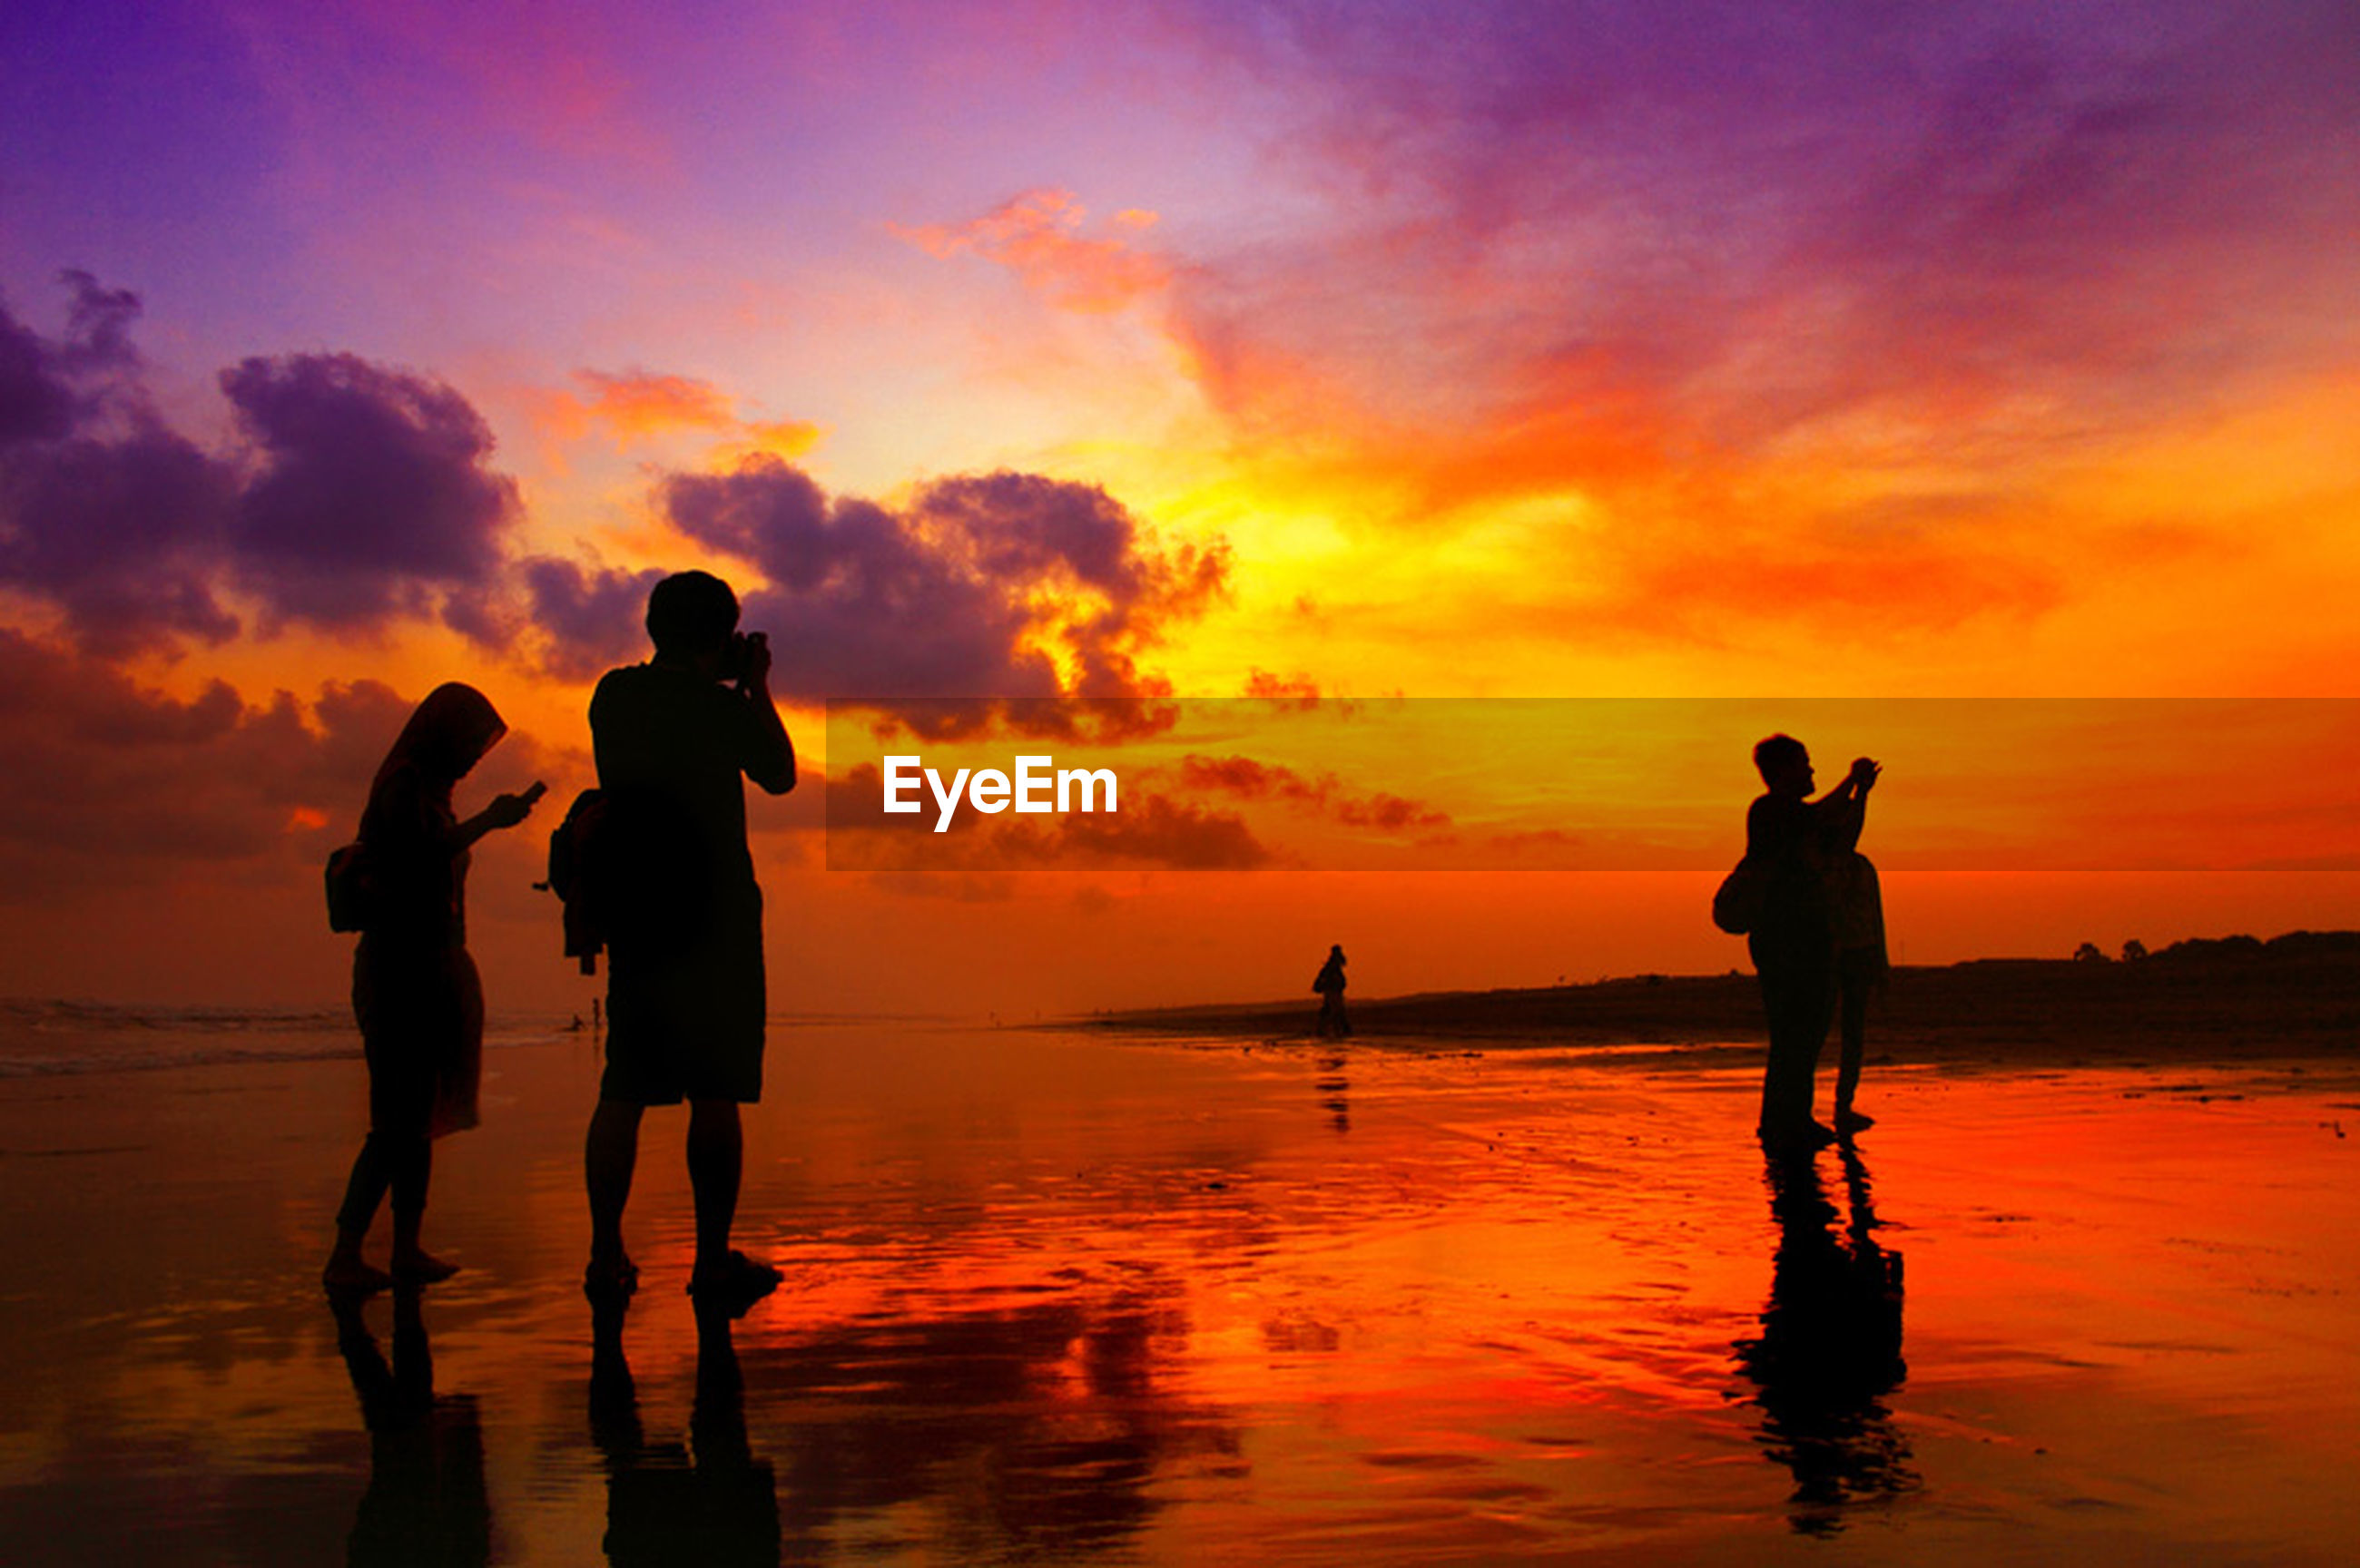 sunset, water, sea, silhouette, orange color, sky, horizon over water, beach, scenics, beauty in nature, reflection, shore, leisure activity, standing, cloud - sky, lifestyles, men, tranquility, tranquil scene